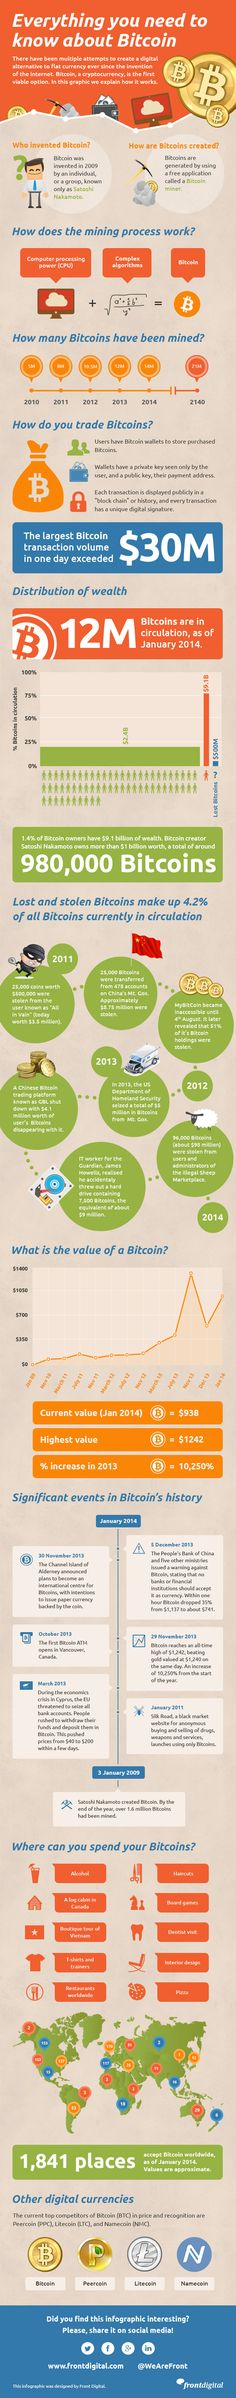 Everything you need to know about Bitcoin [INFOGRAPHIC]